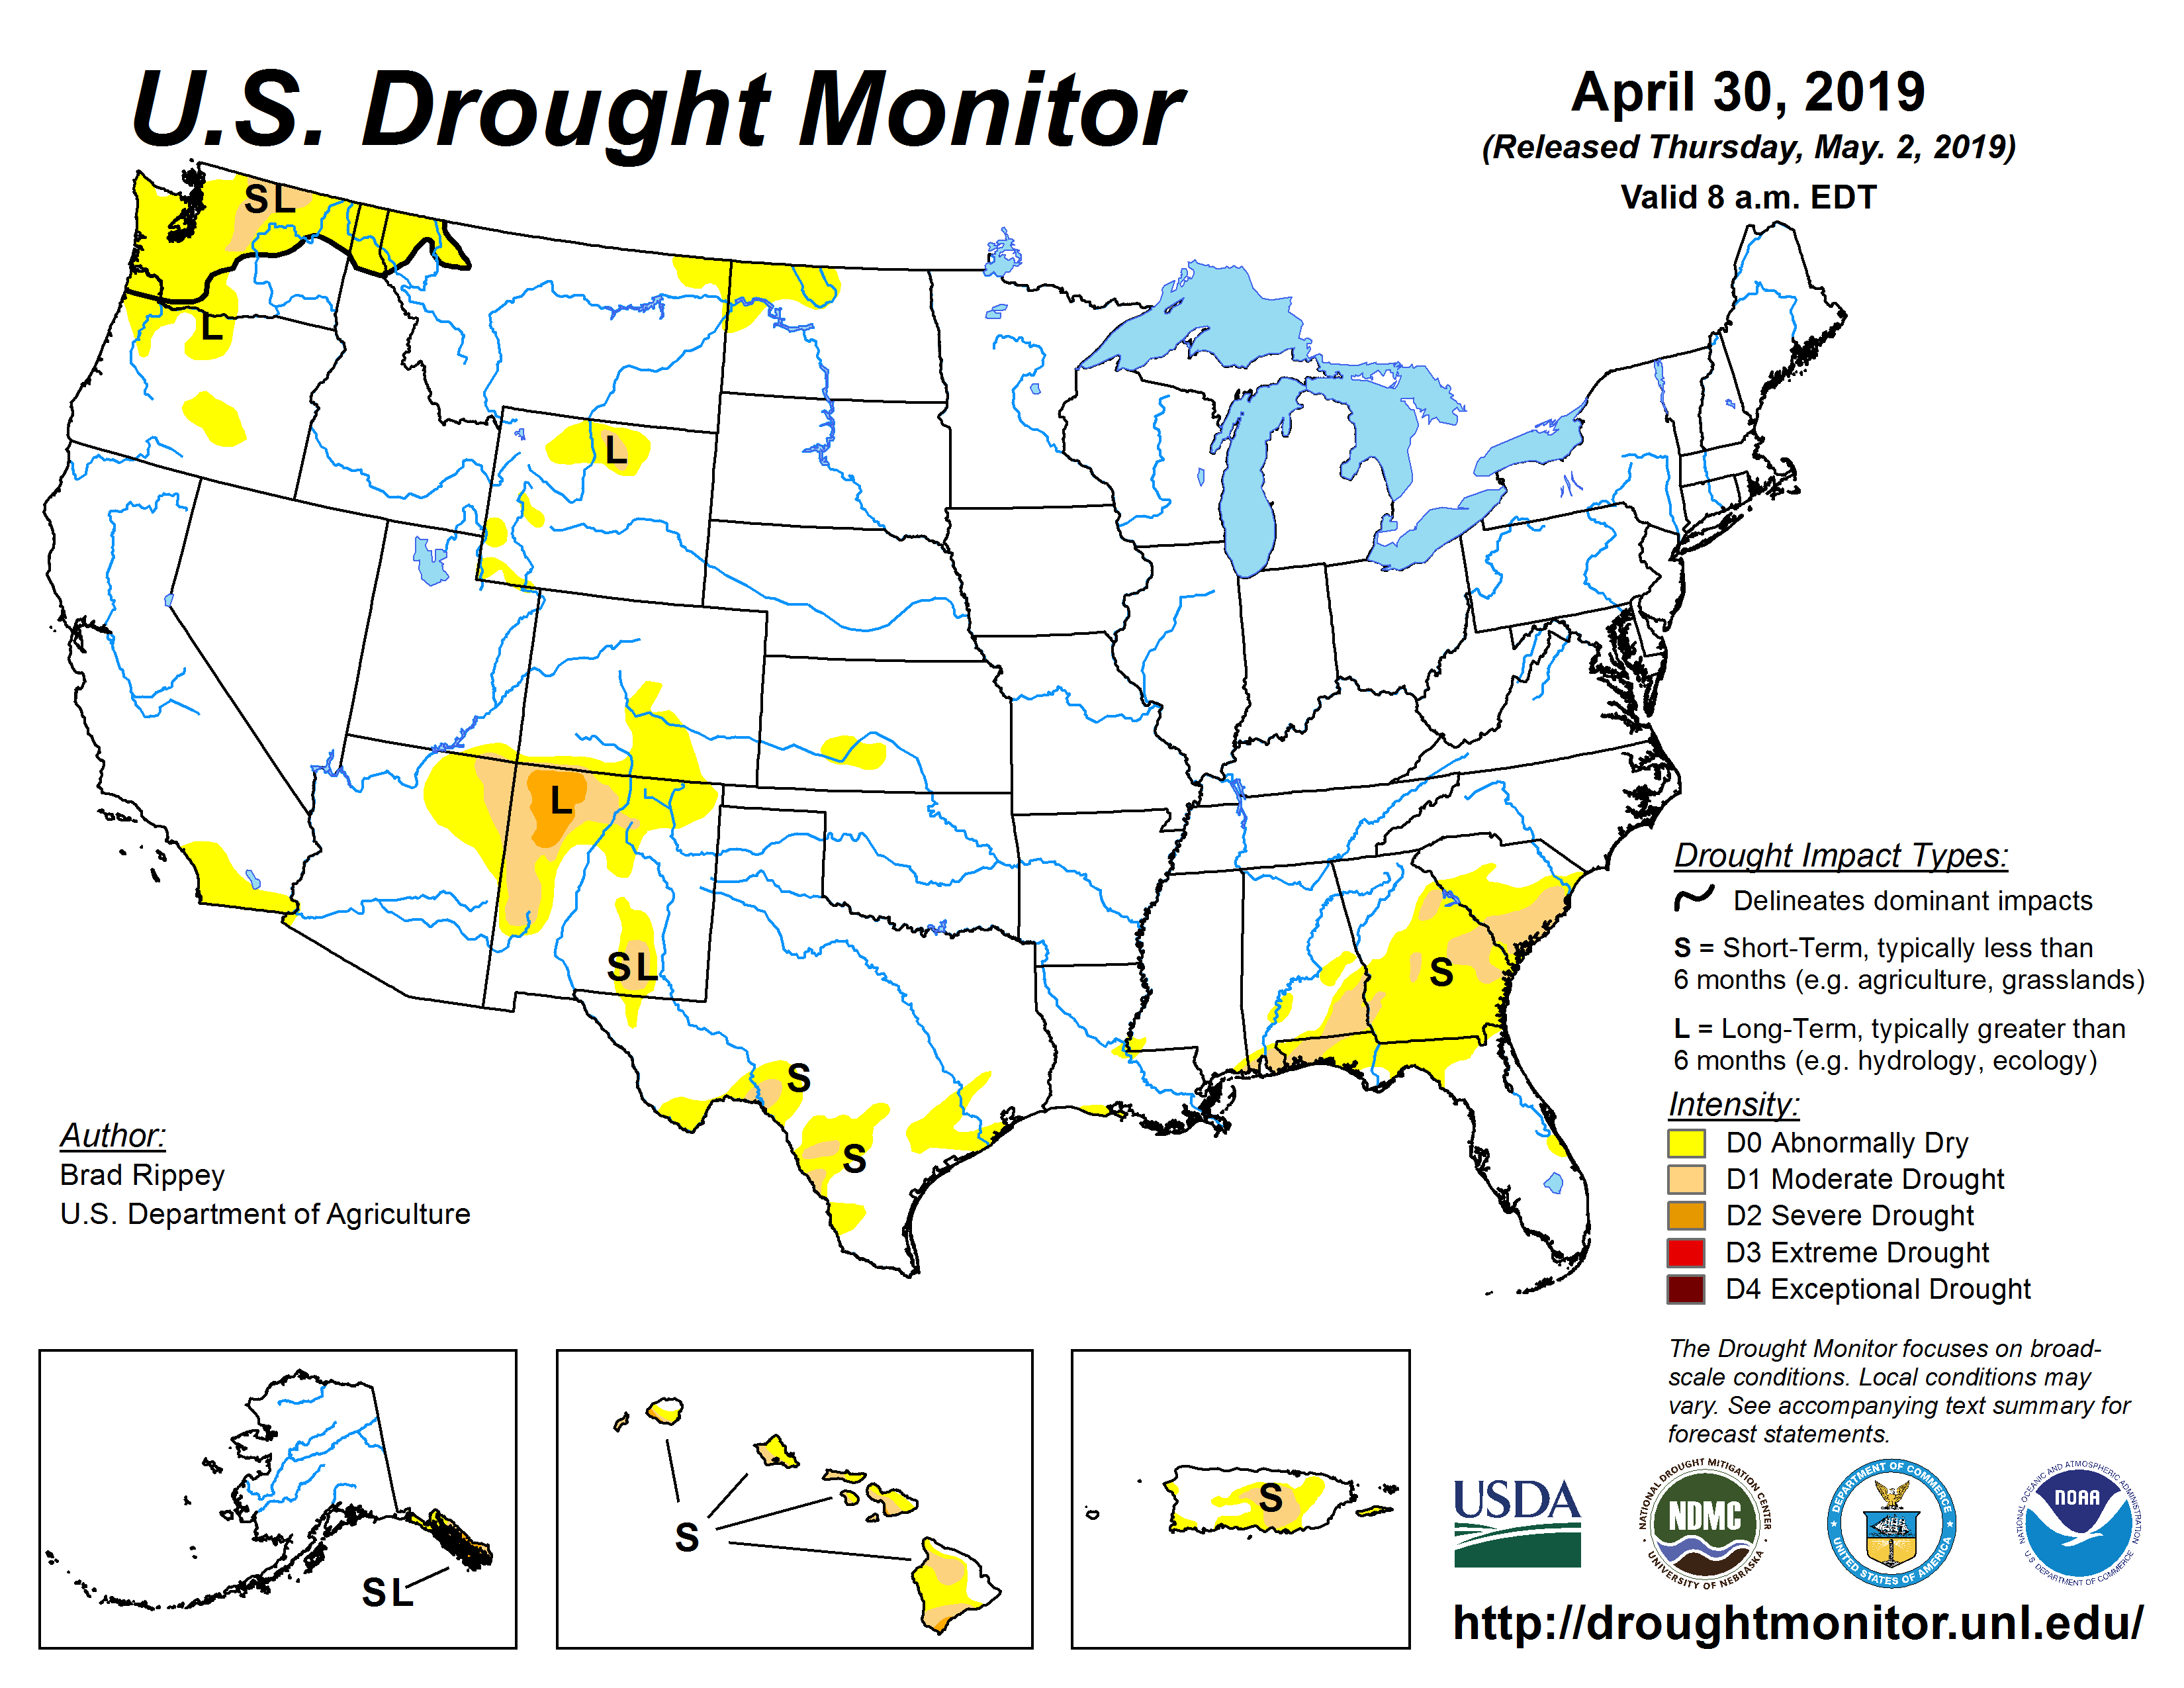 The U.S. Drought Monitor drought map valid April 30, 2019